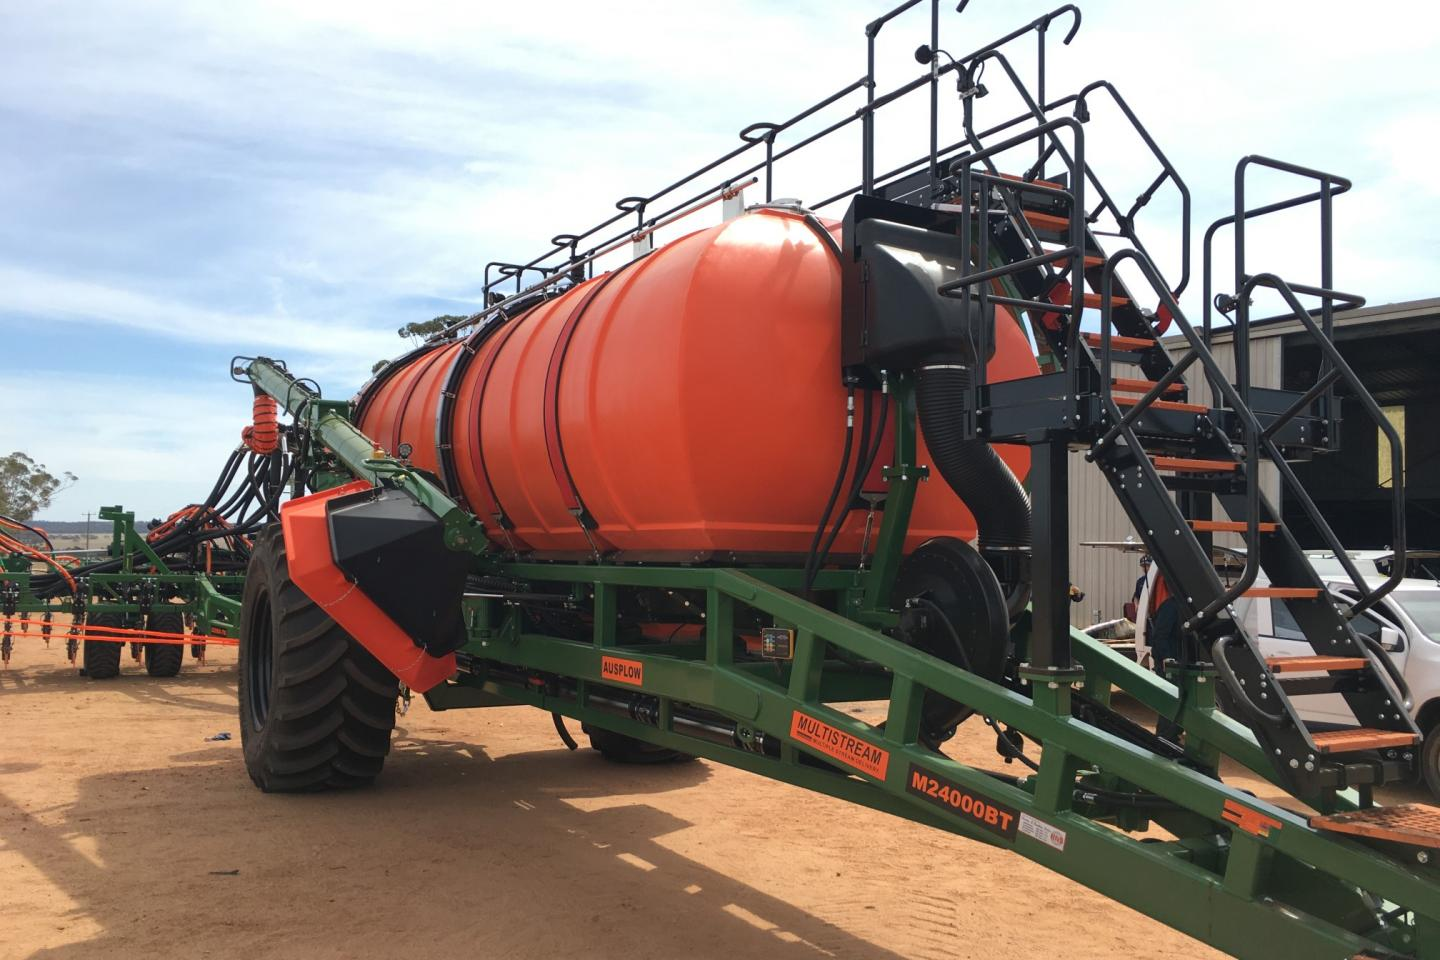 Ausplow's M24000 tow-between granular and liquid-ready Multistream air seeder. It's one of an eight model range with several models to be showcased at machinery field days throughout Australia during the next two months.